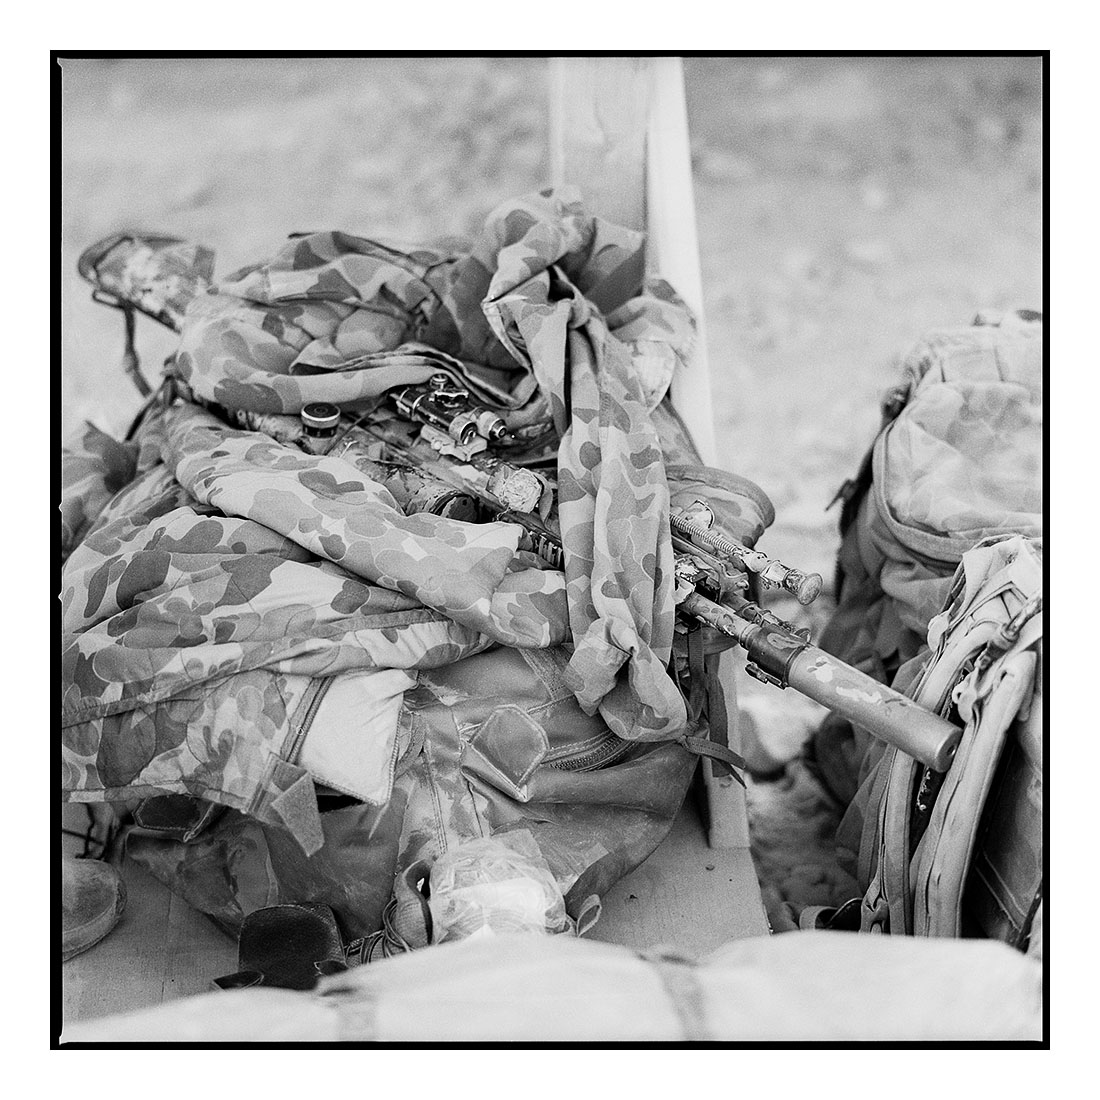 Rifle   (2011) Archival pigment prints on Ilford paper 40cm x 40cm | Edition of 25 + 3 Artist Proofs 100cm x 100cm | Edition of 10 + 3 Artist Proofs